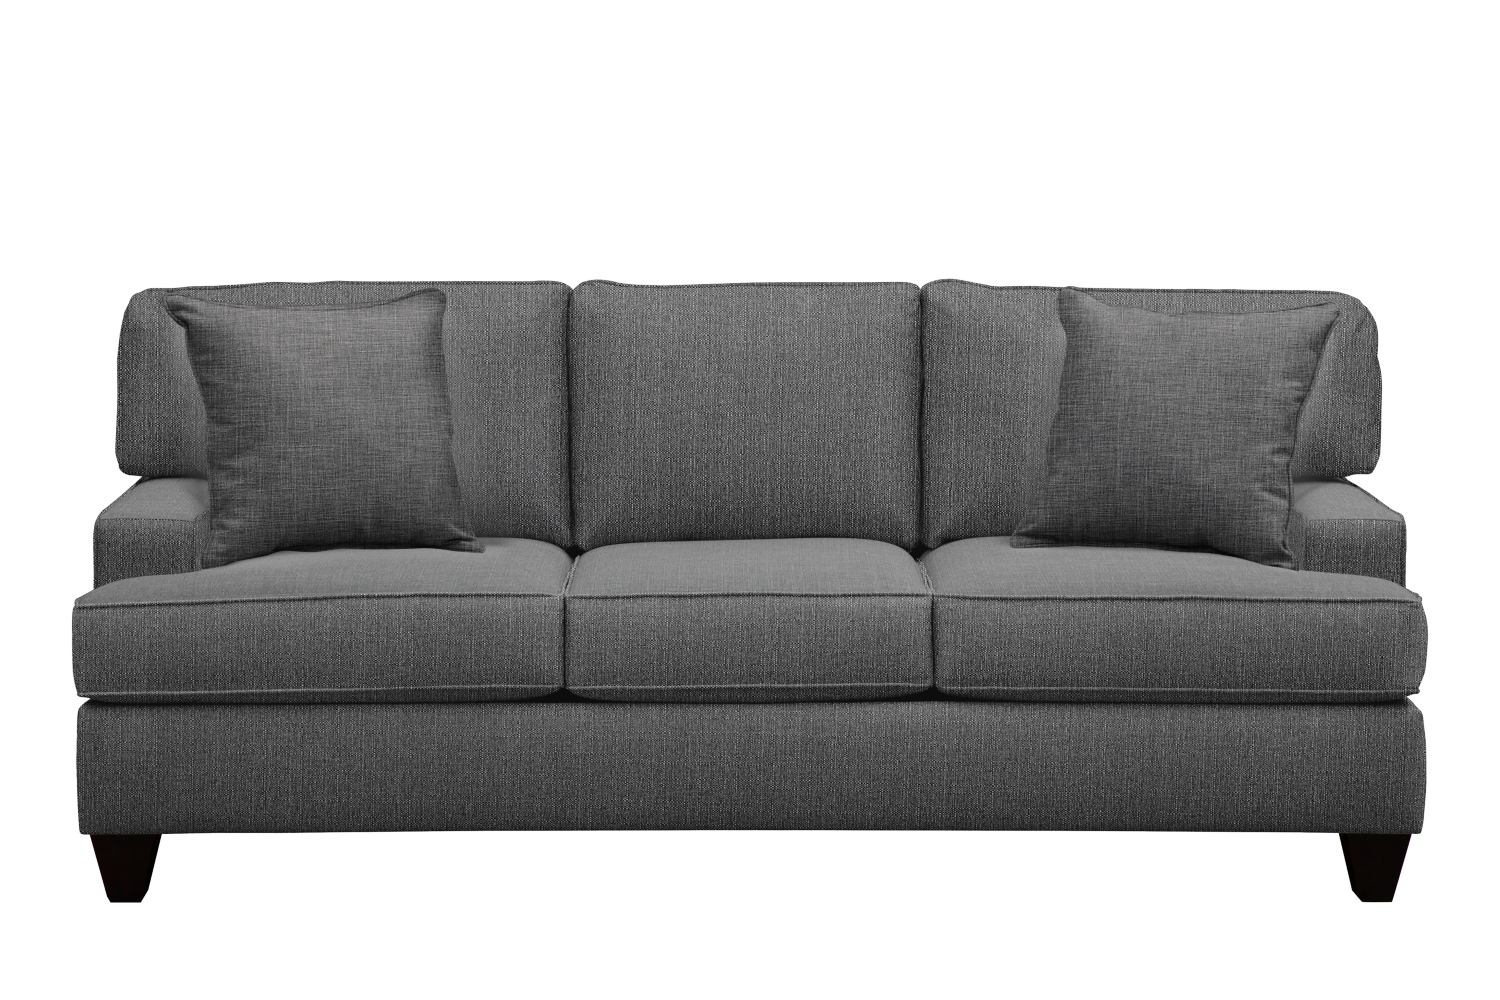 "Living Room Furniture - Conner Track Arm Sofa 87"" Depalma Charcoal w/ Depalma Charcoal Pillow"